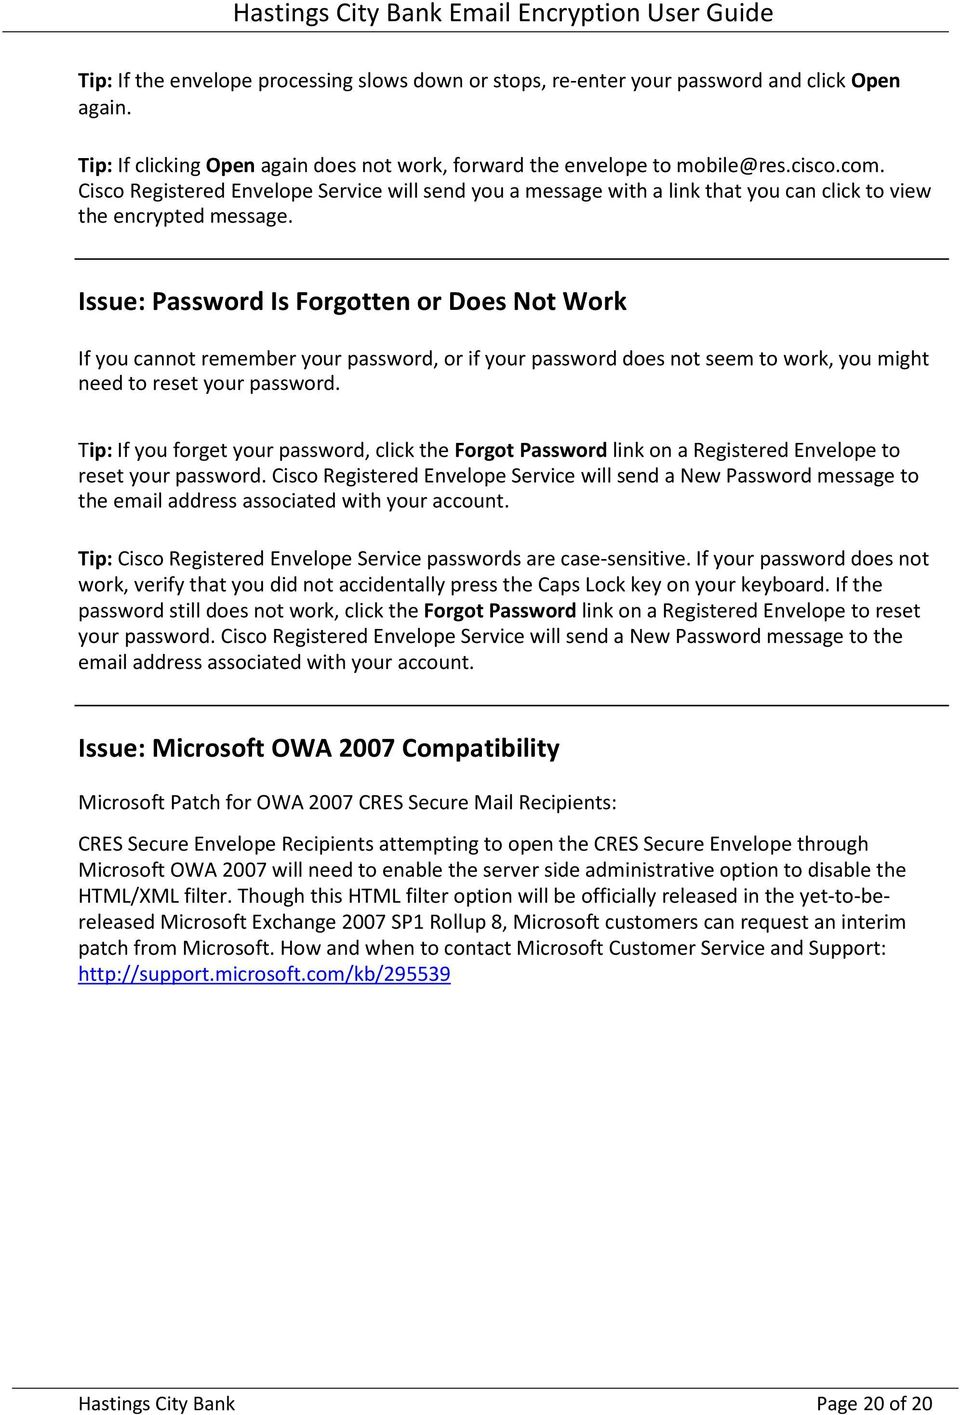 Issue: Password Is Forgotten or Does Not Work If you cannot remember your password, or if your password does not seem to work, you might need to reset your password.